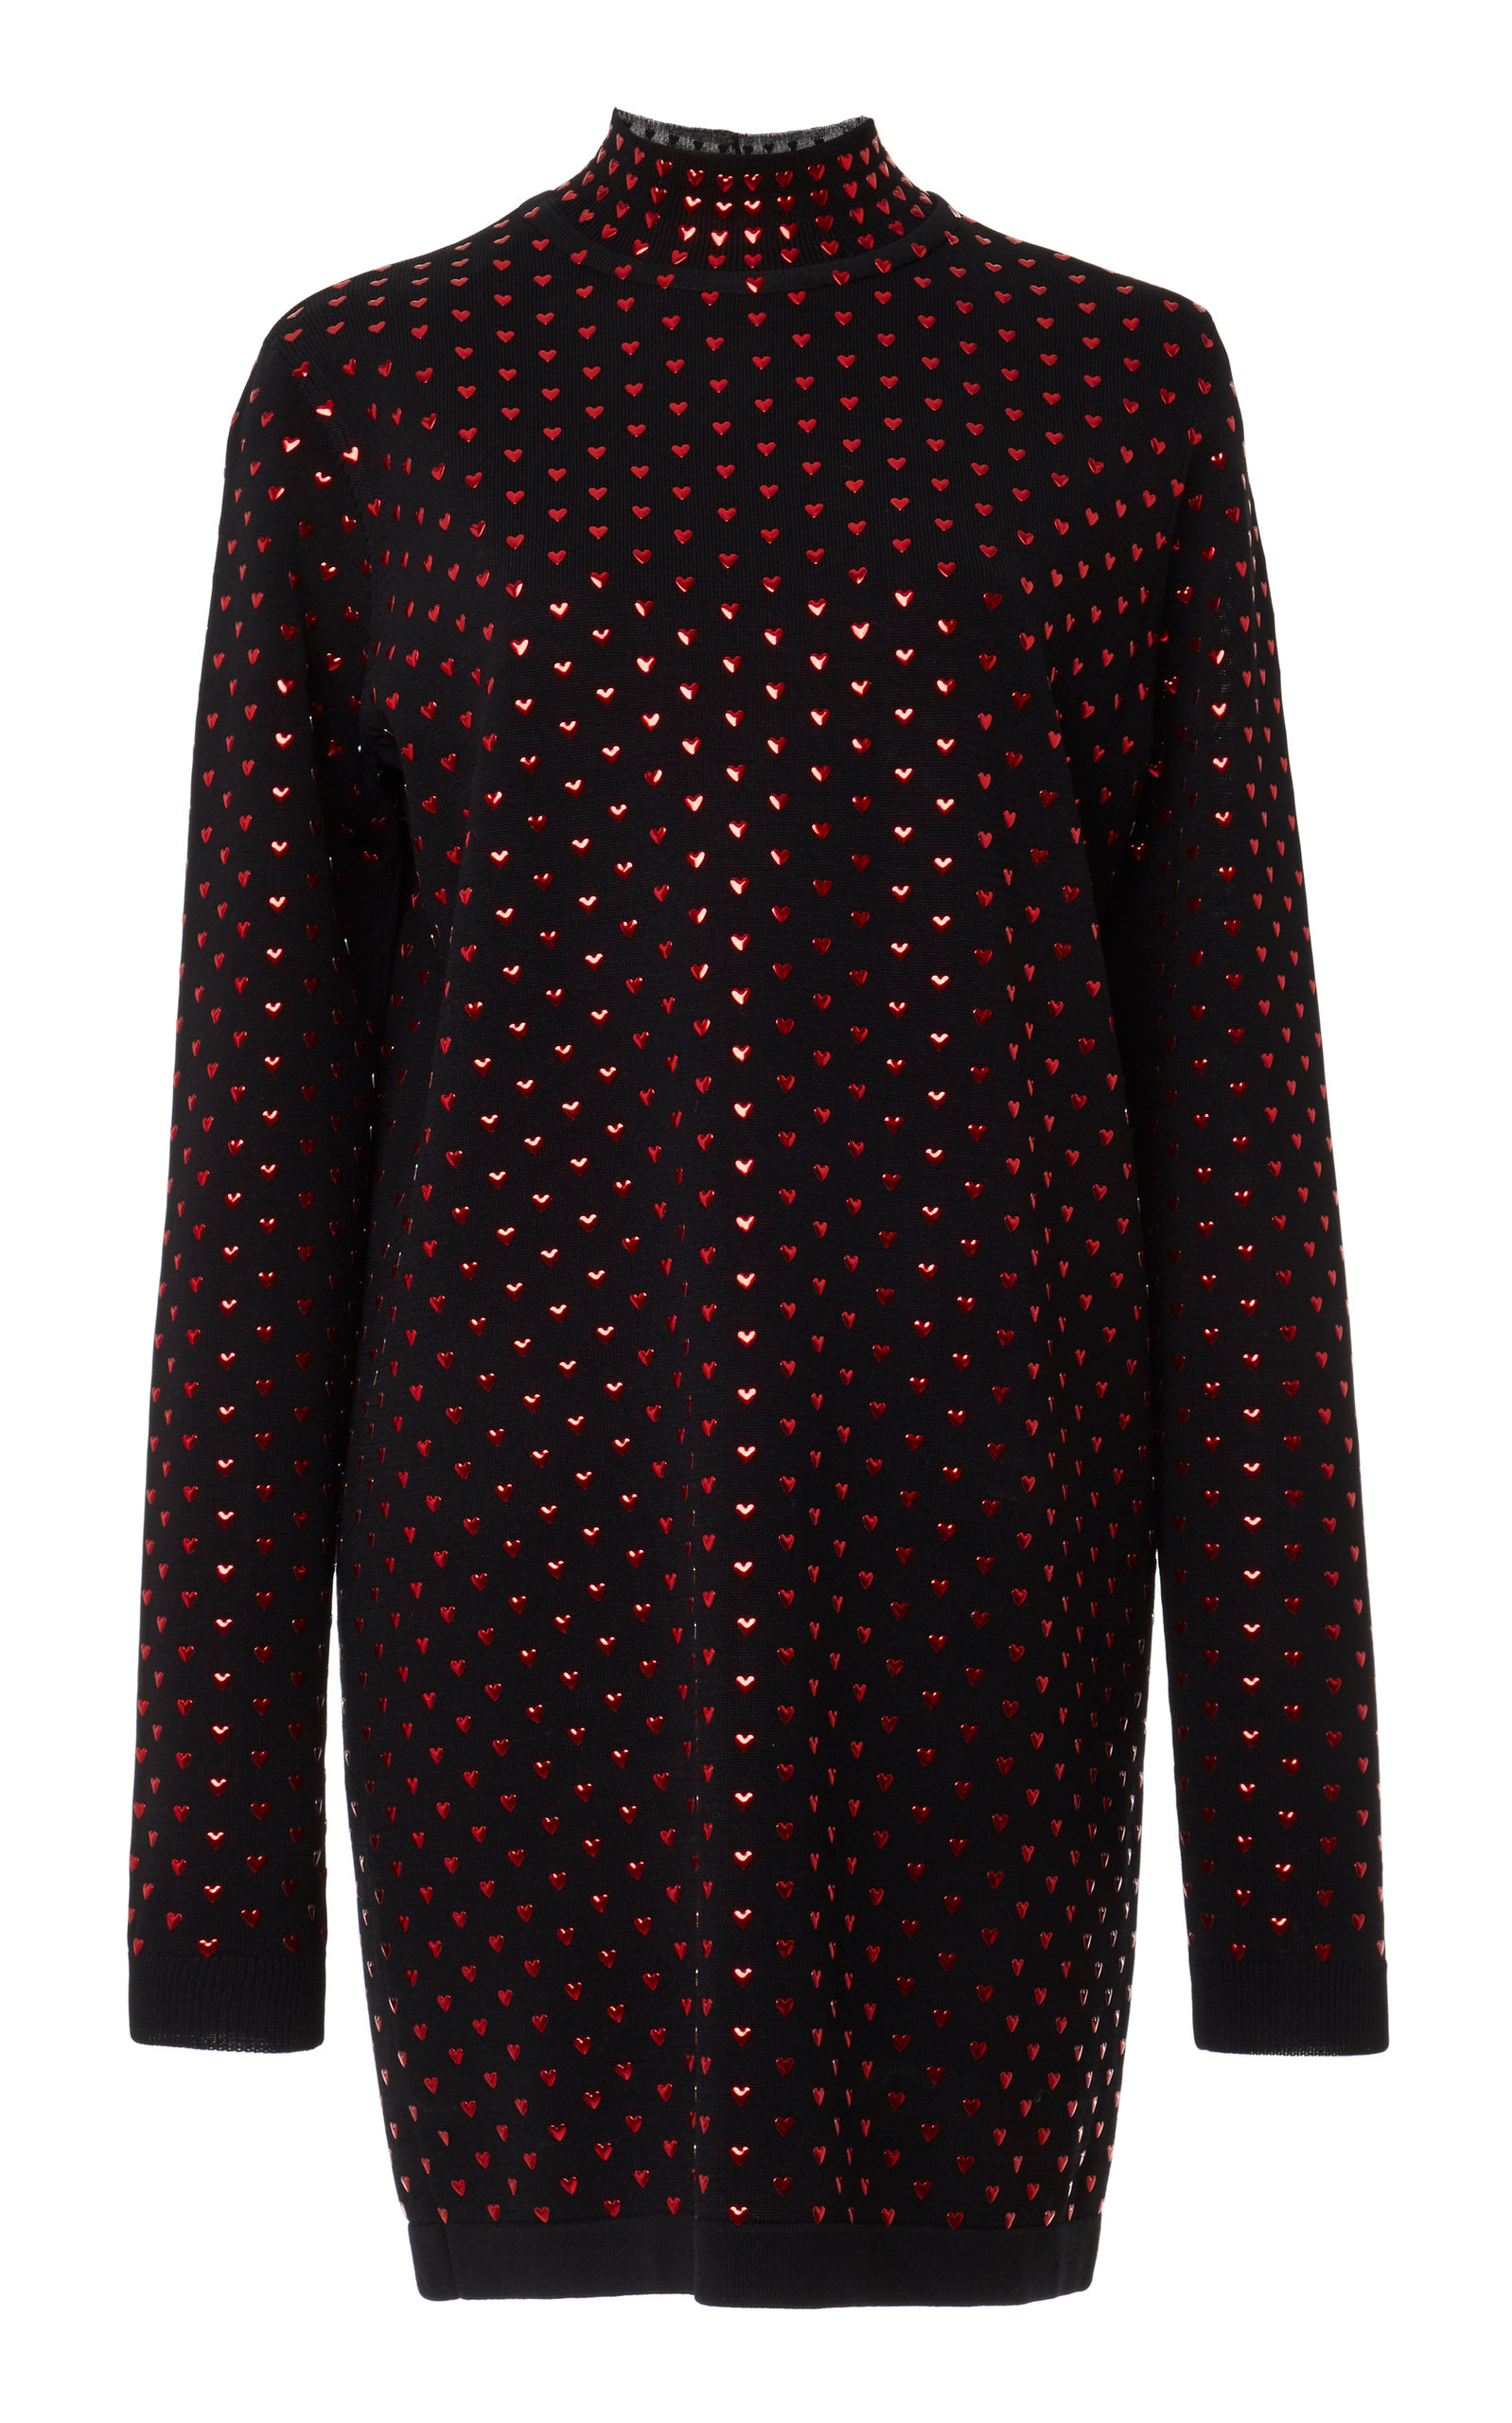 ADAM SELMAN Turtle Neck Heart Embellished Mini Dress in Black